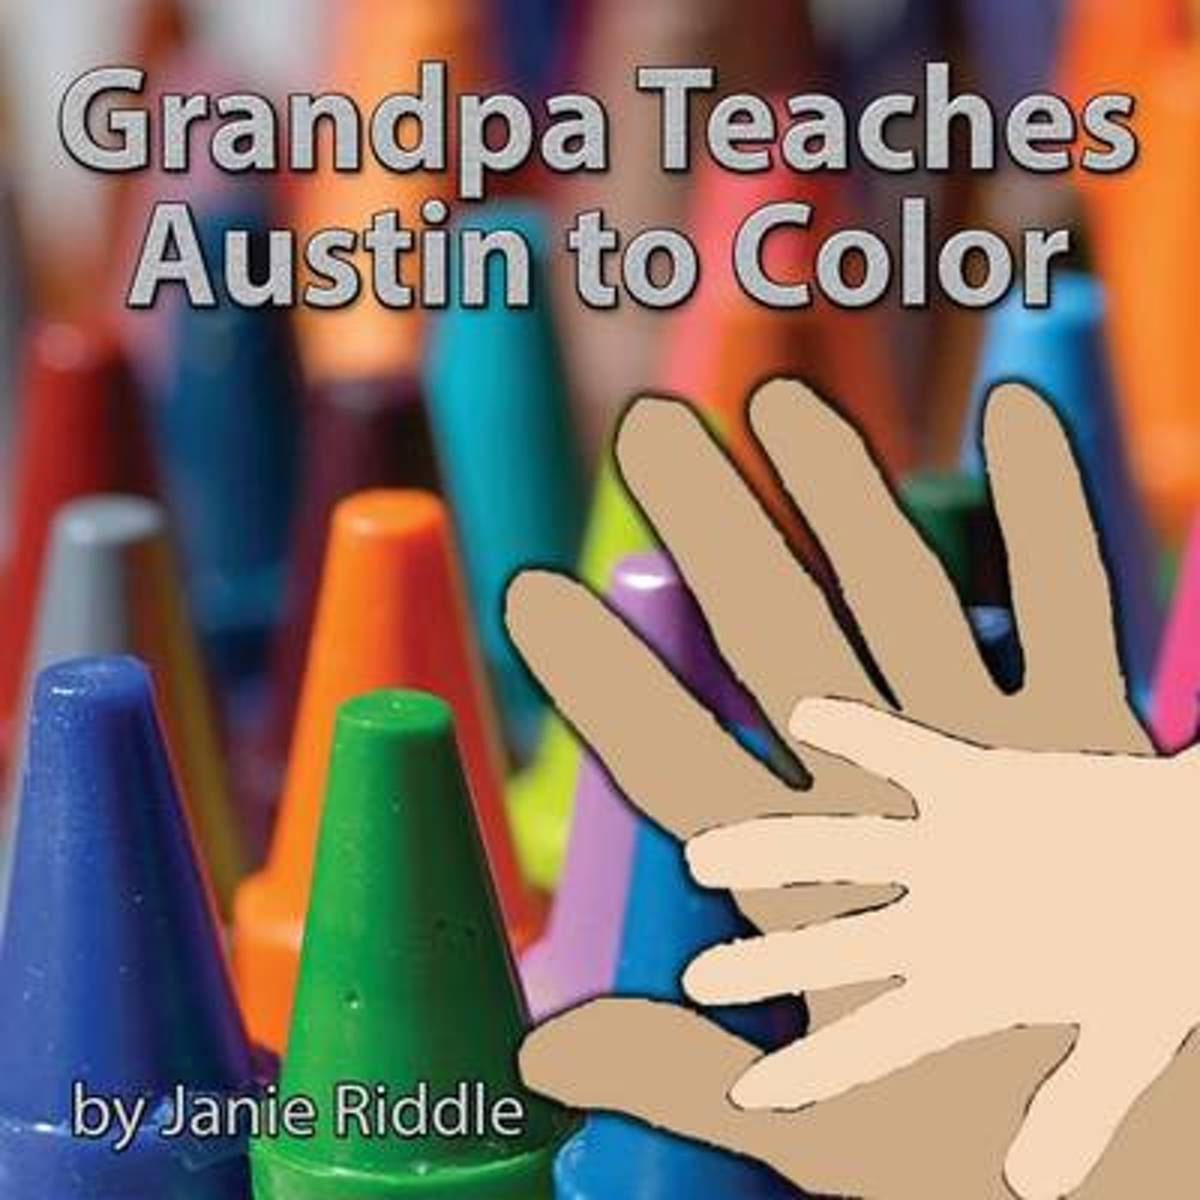 Grandpa Teaches Austin to Color